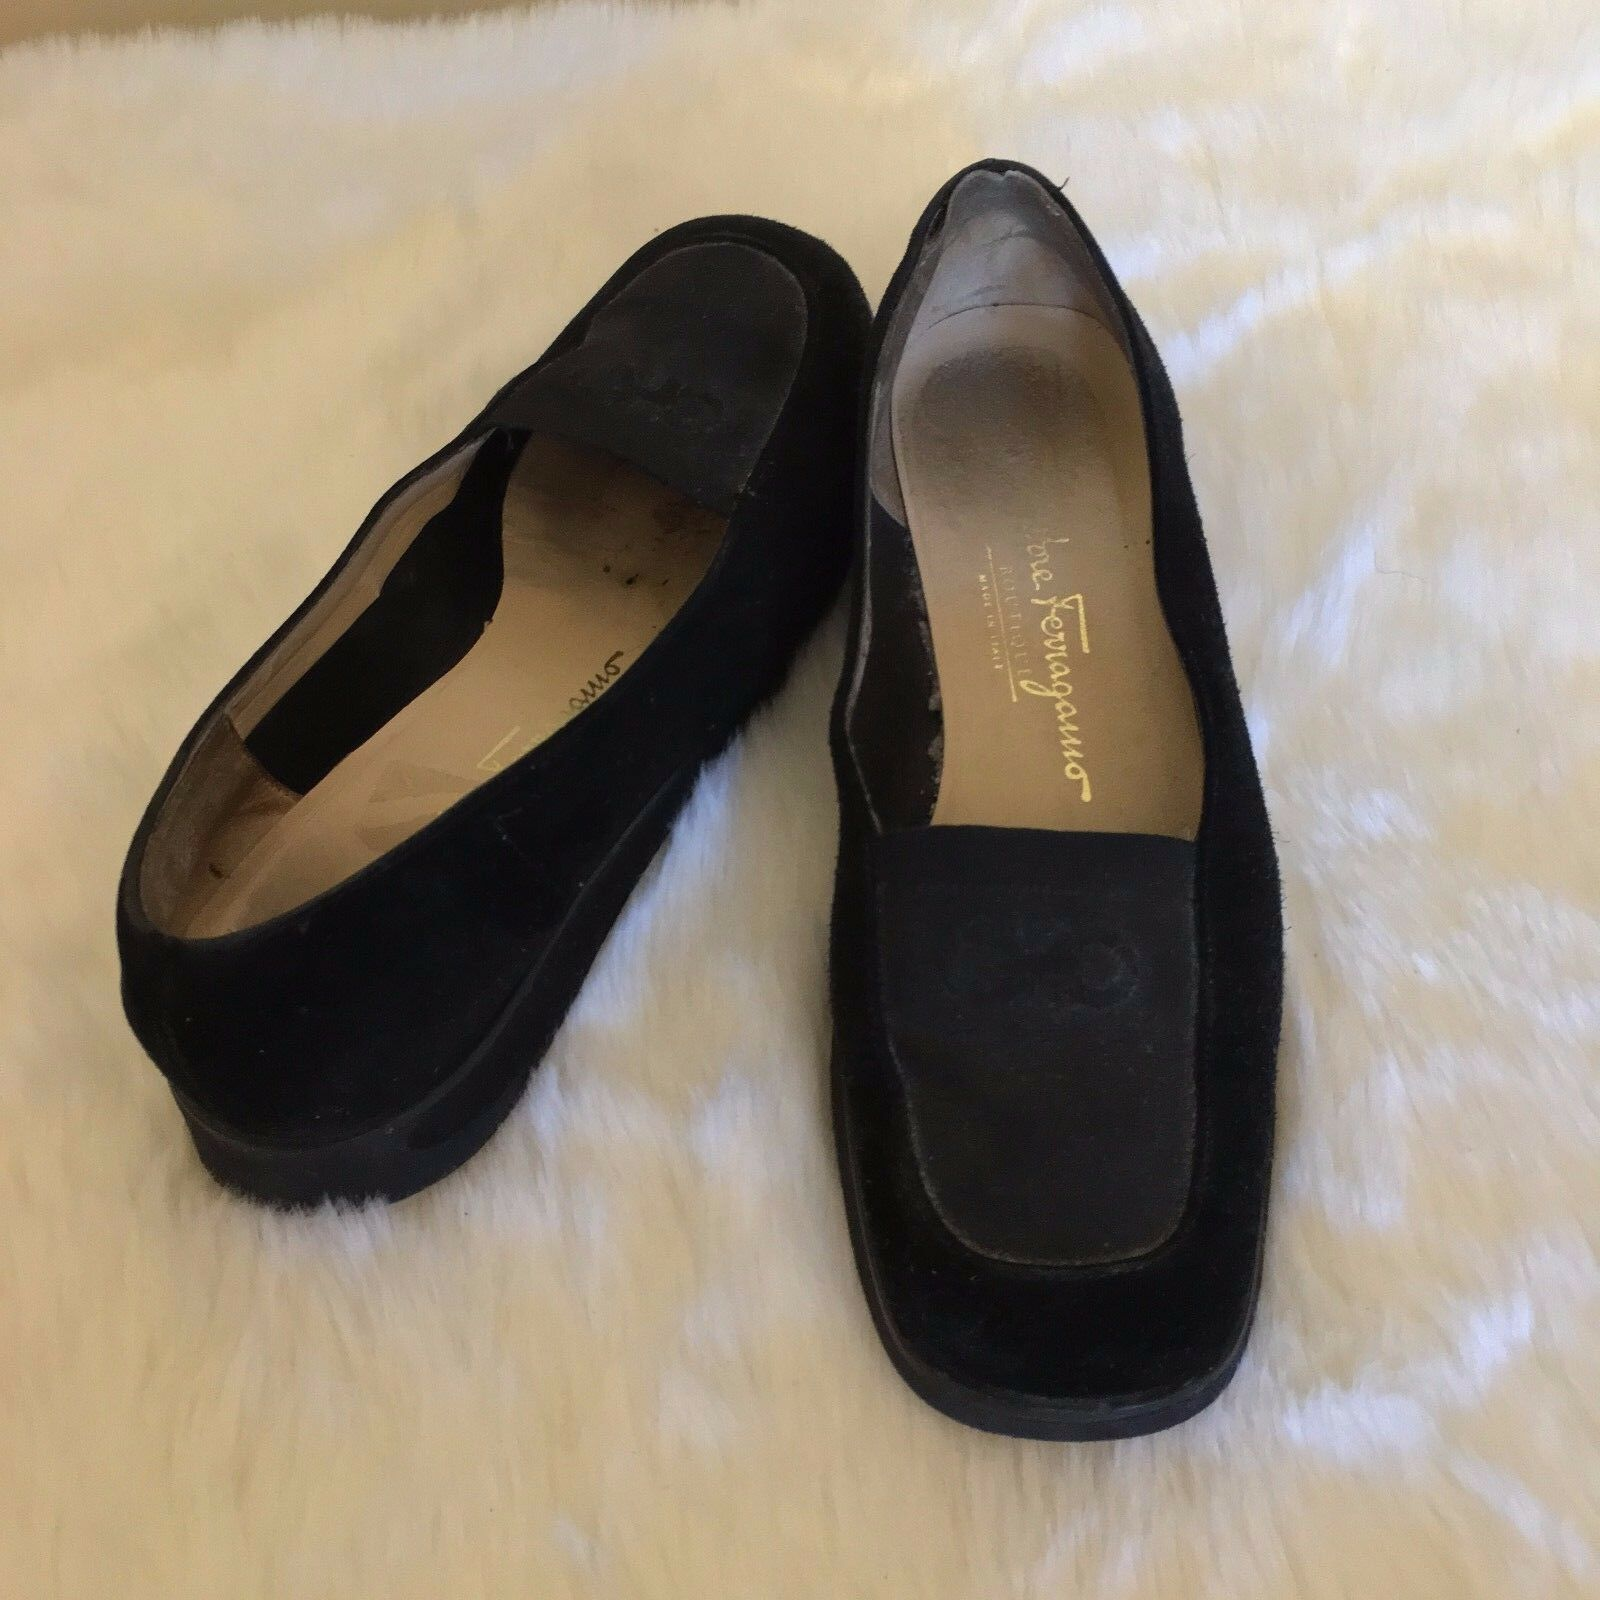 VINTAGE Salvatore Ferragamo Boutique Women's Black Slipon Loafers SIZE 7.5M